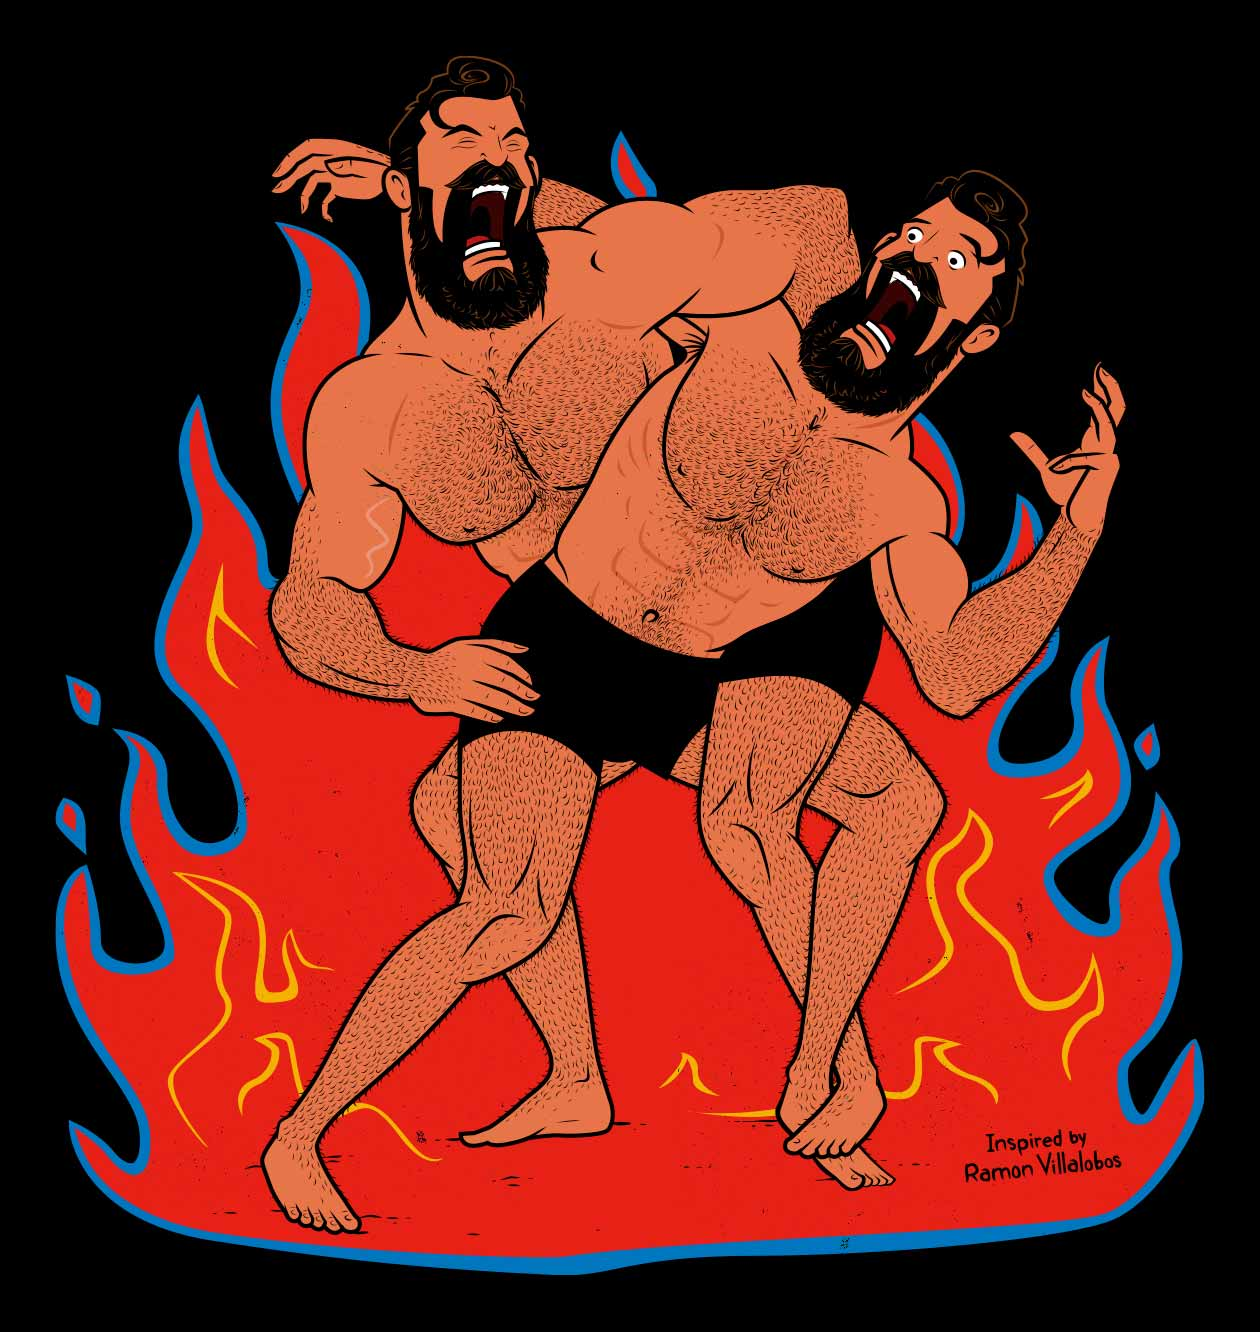 Outlift Illustration of two bodybuilders wrestling.